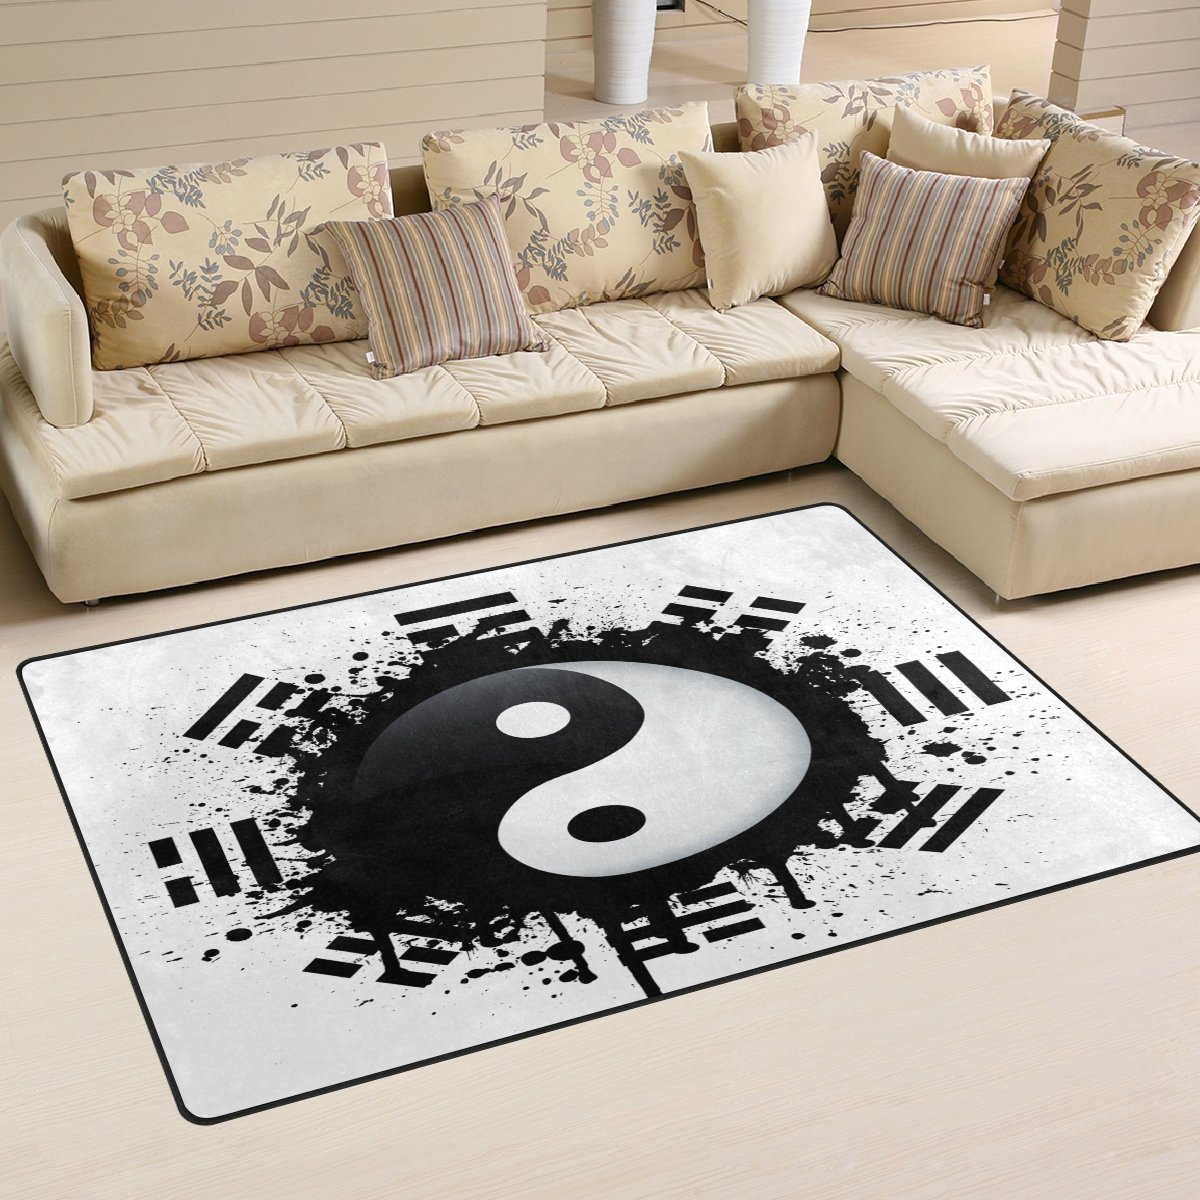 LORVIES Black White Yin Yang Area Rug Carpet Non-Slip Floor Mat Doormats Living Room Bedroom 31 x 20 inches 114